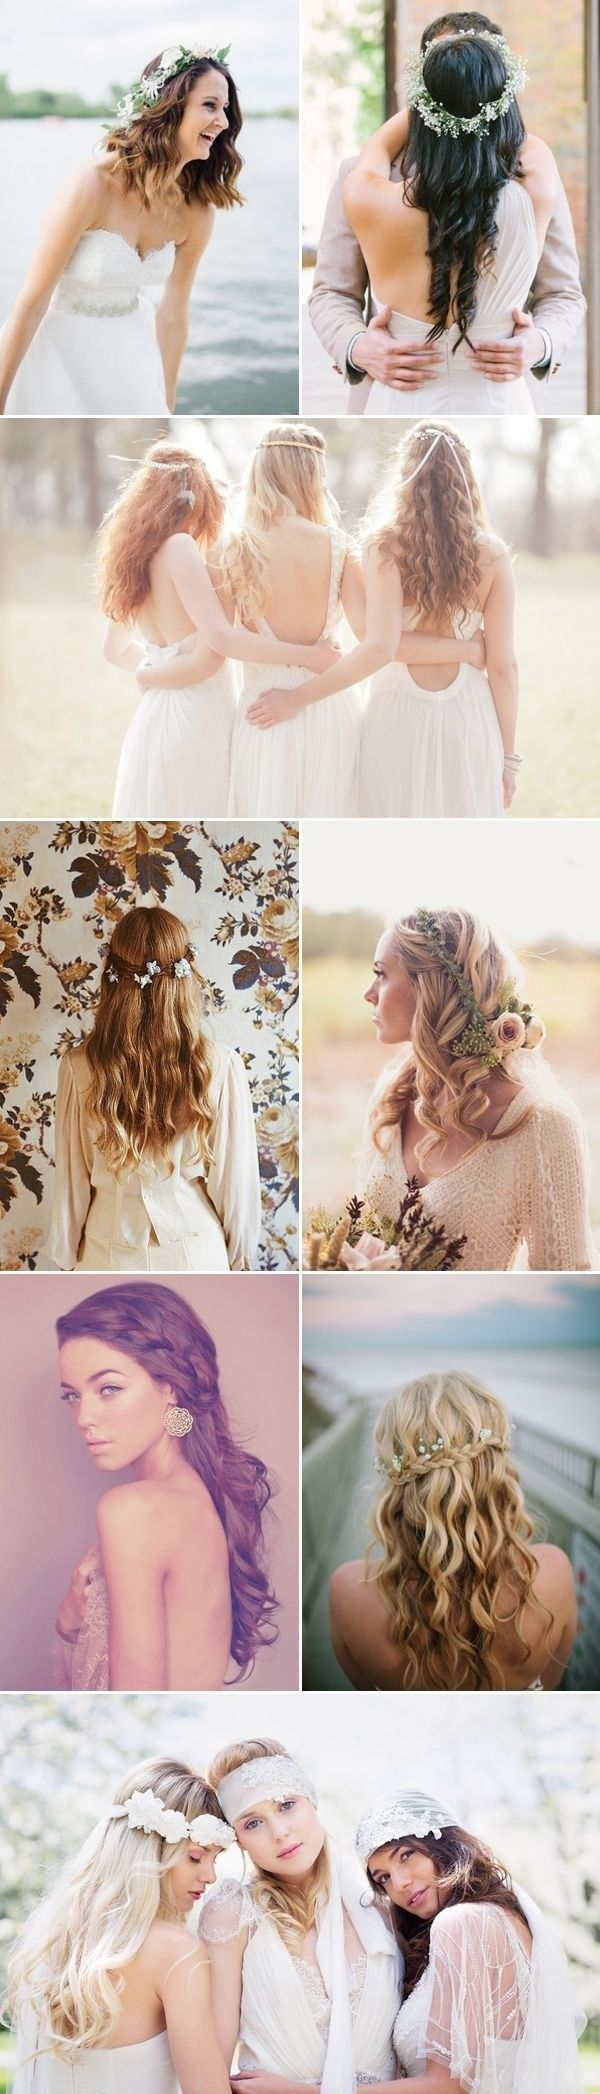 hottest bridesmaid hairstyles for long hair bridesmaid